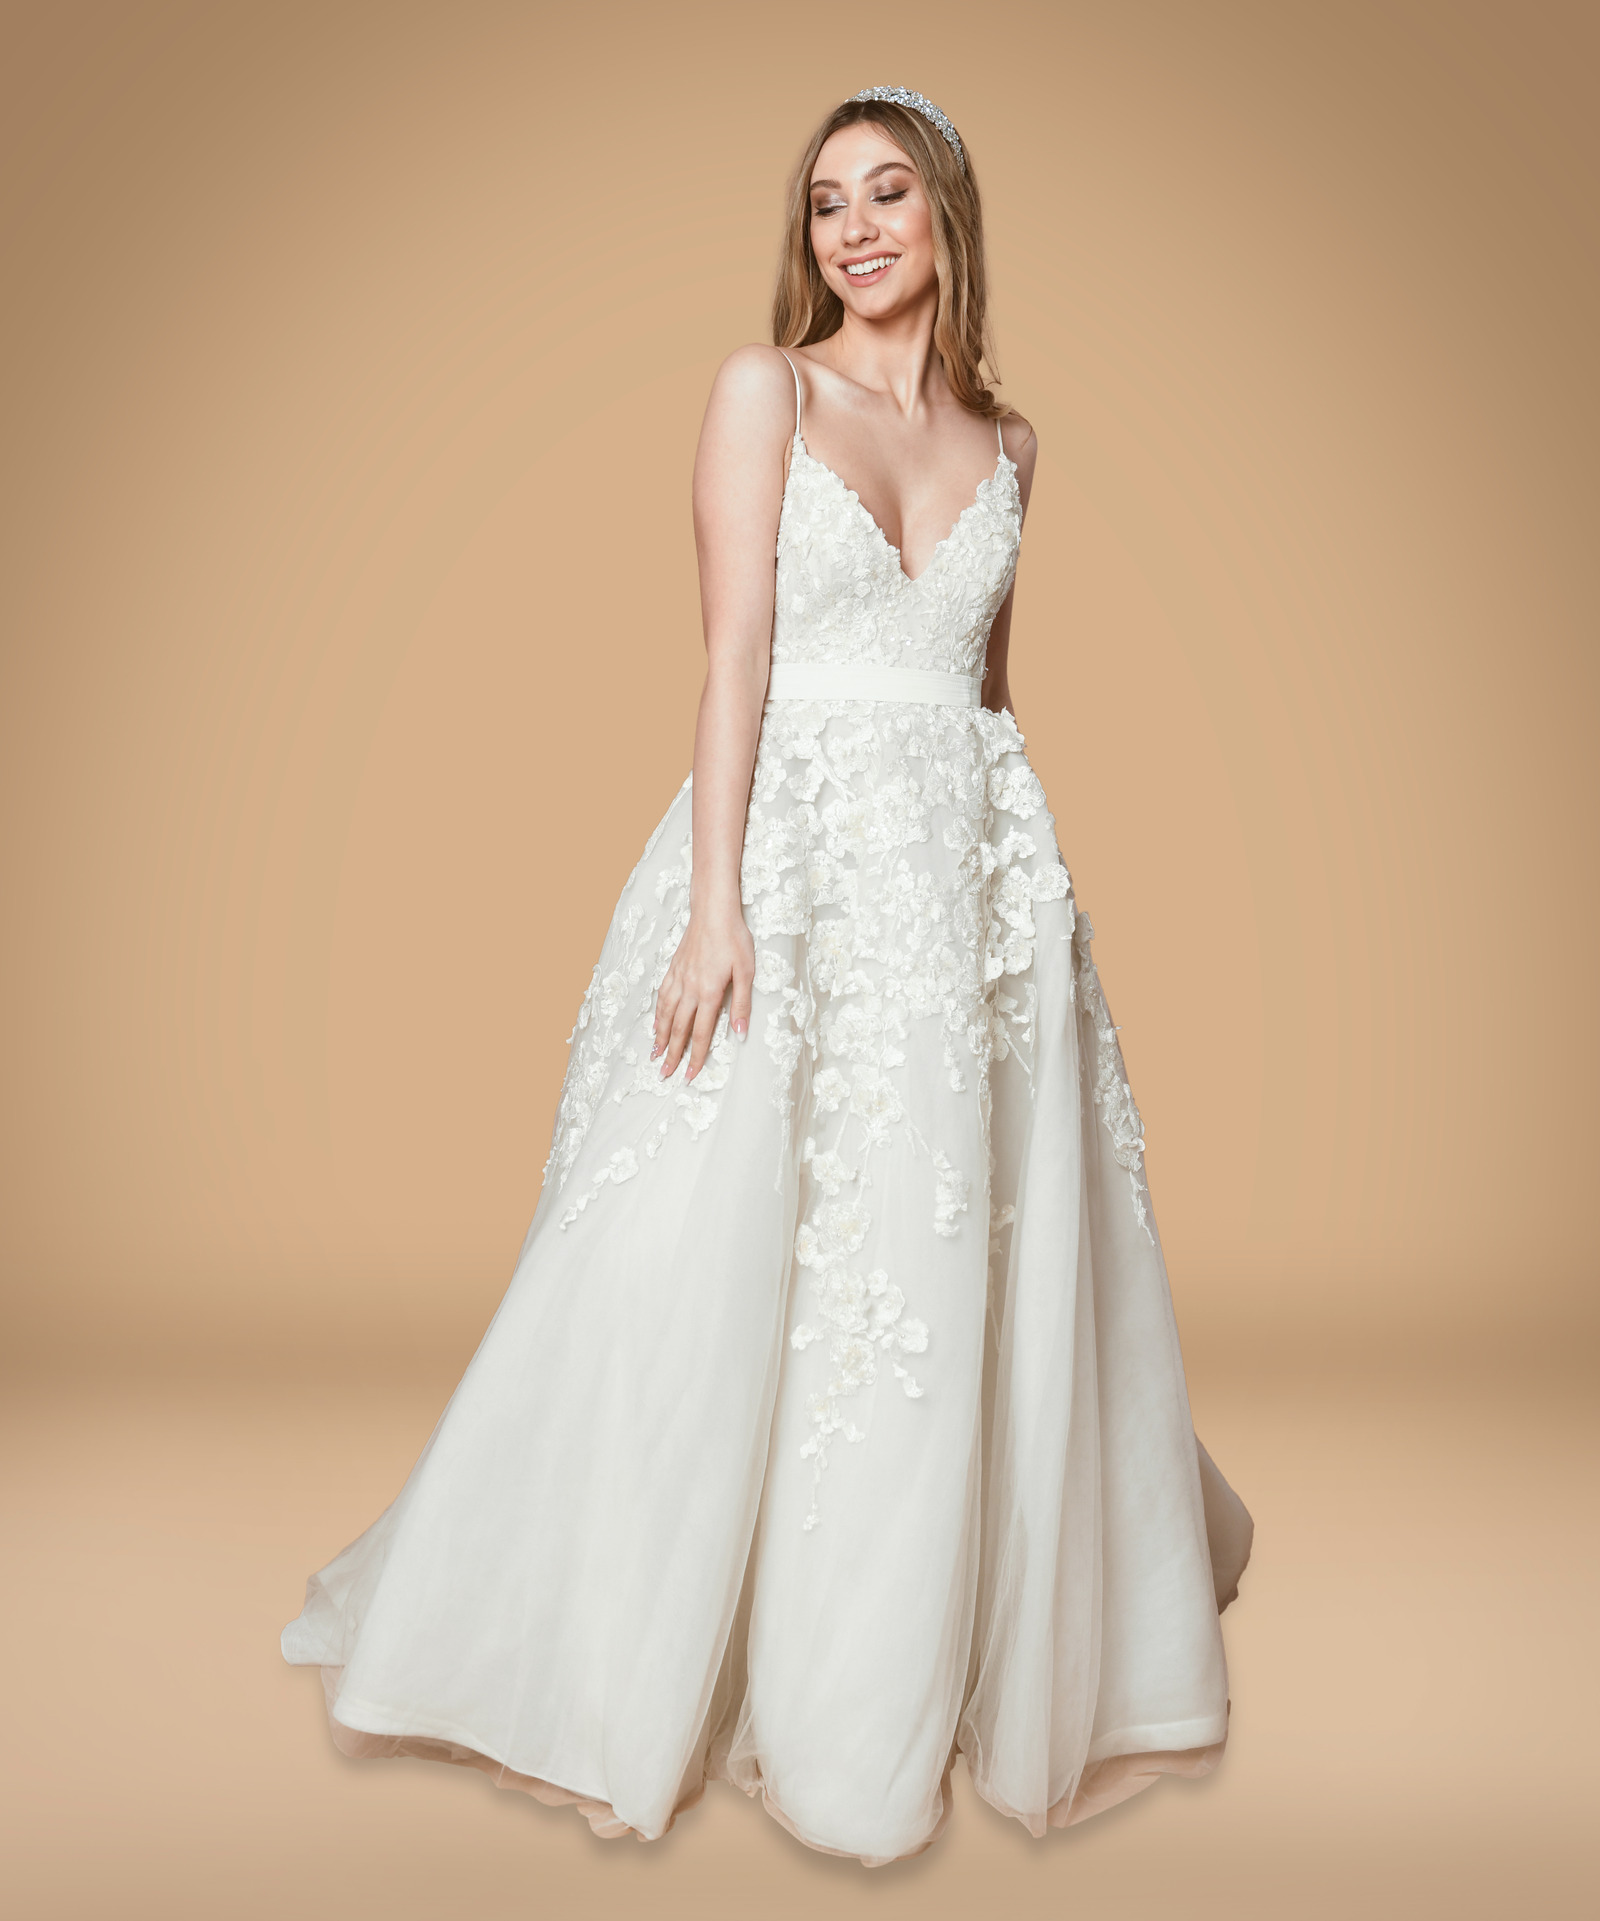 Wedding Gowns To Rent: Dress 1